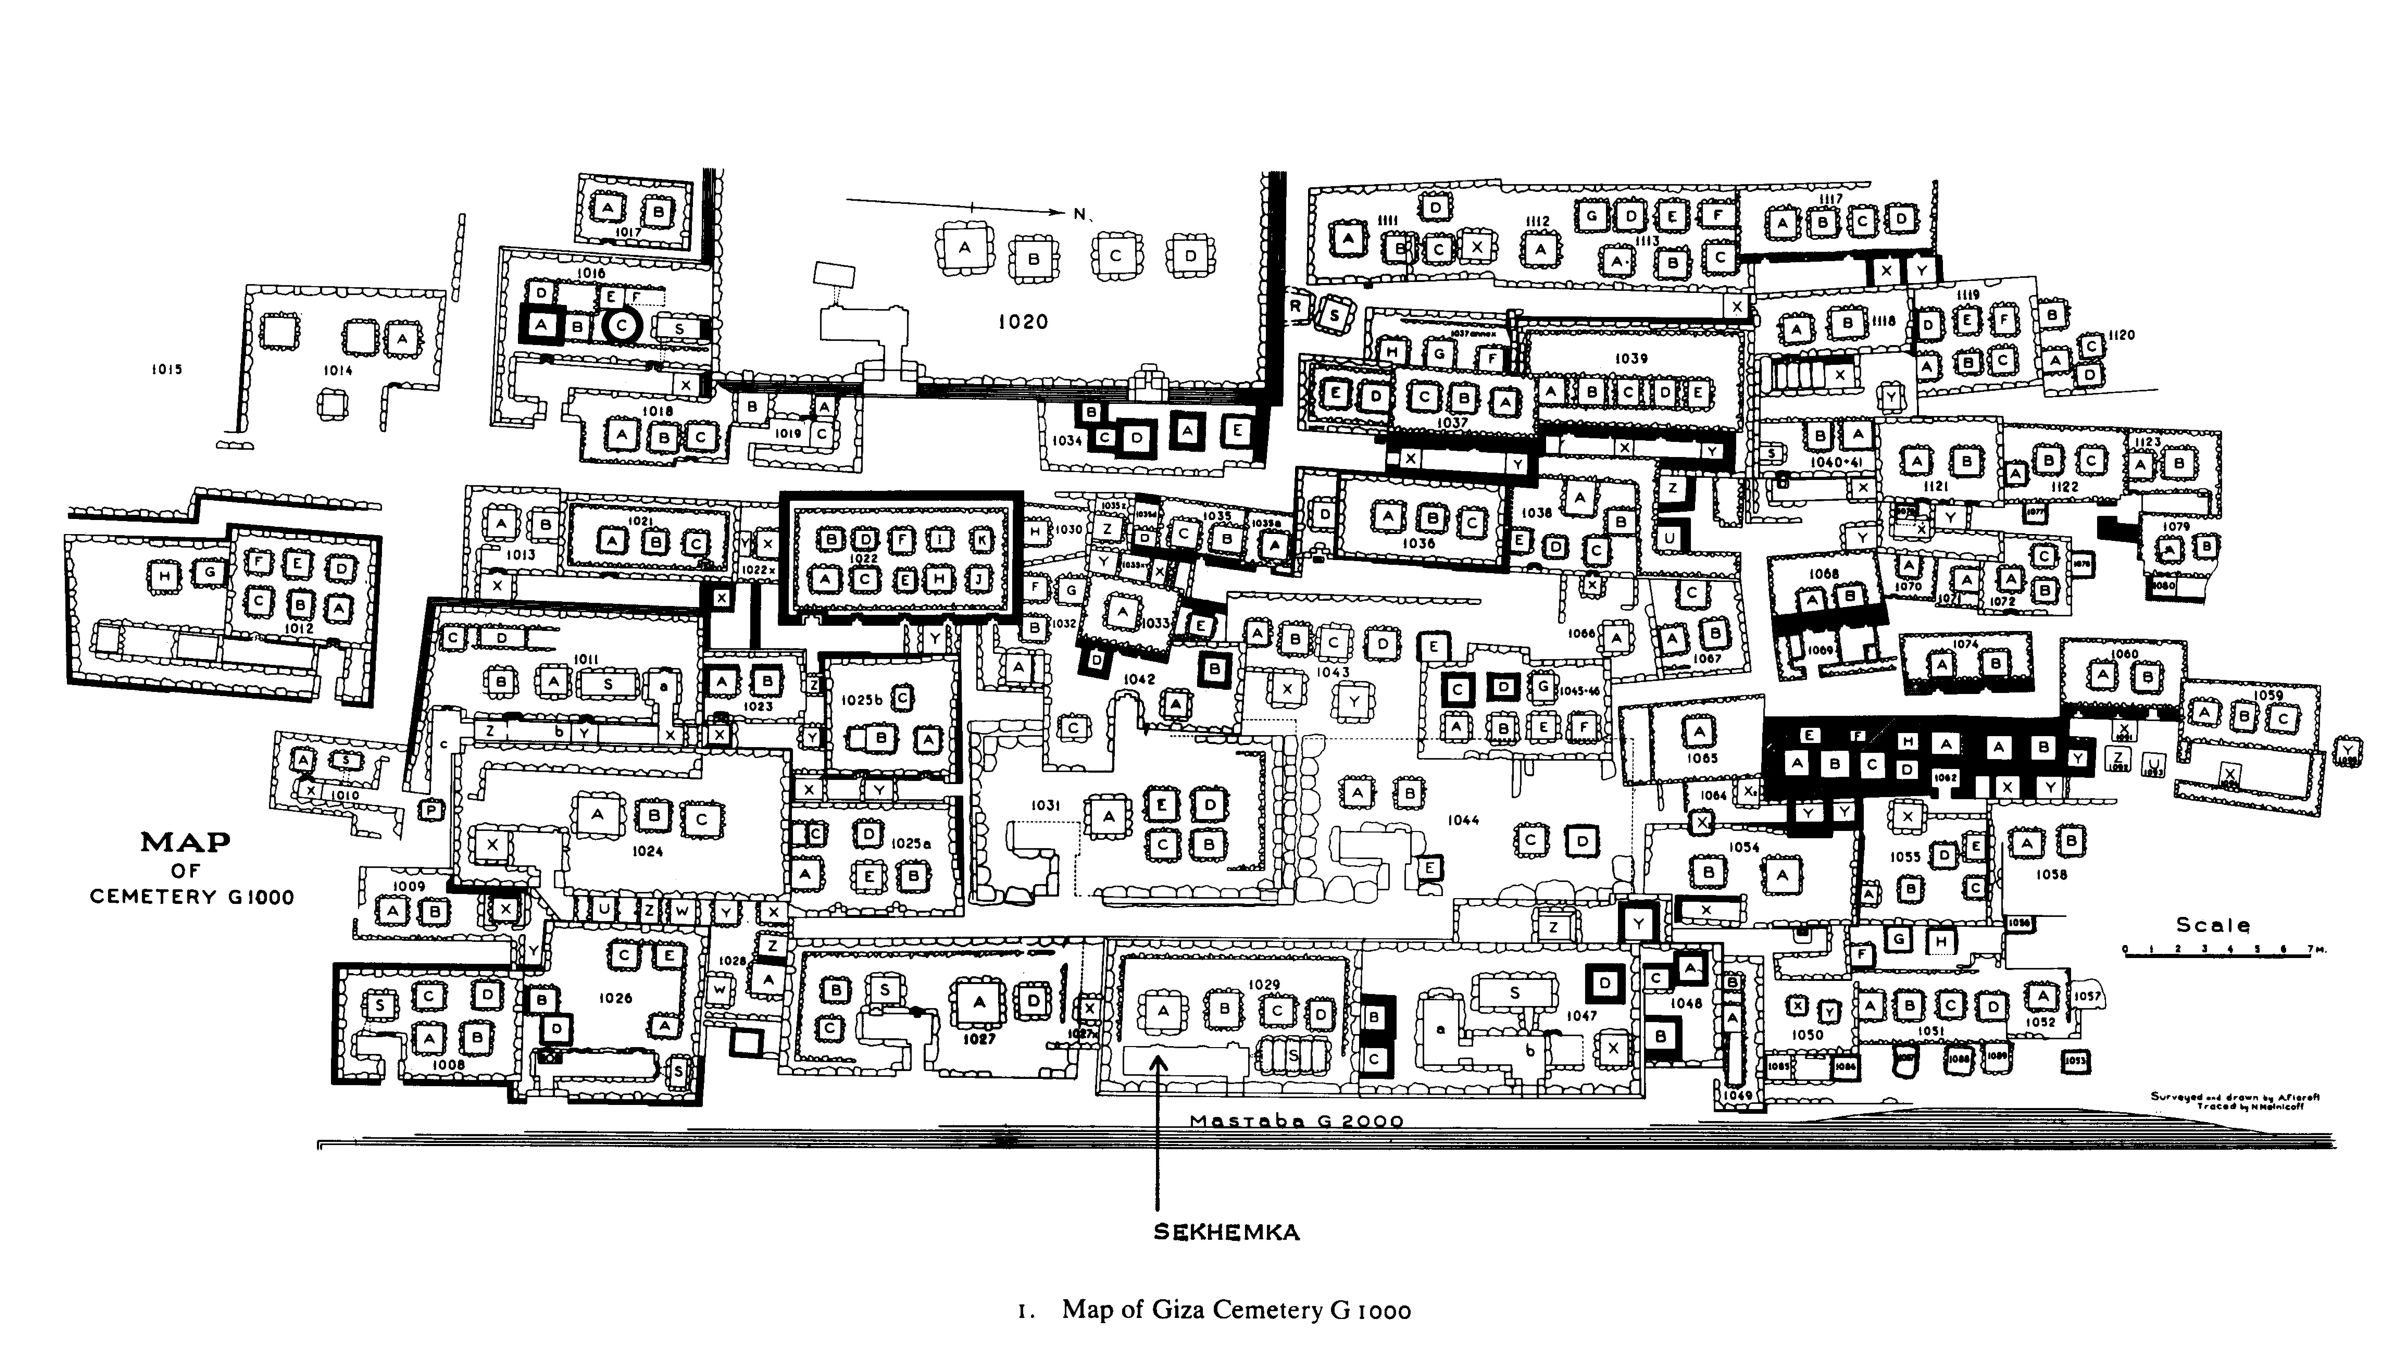 Maps and plans: Plan of Cemetery G 1000